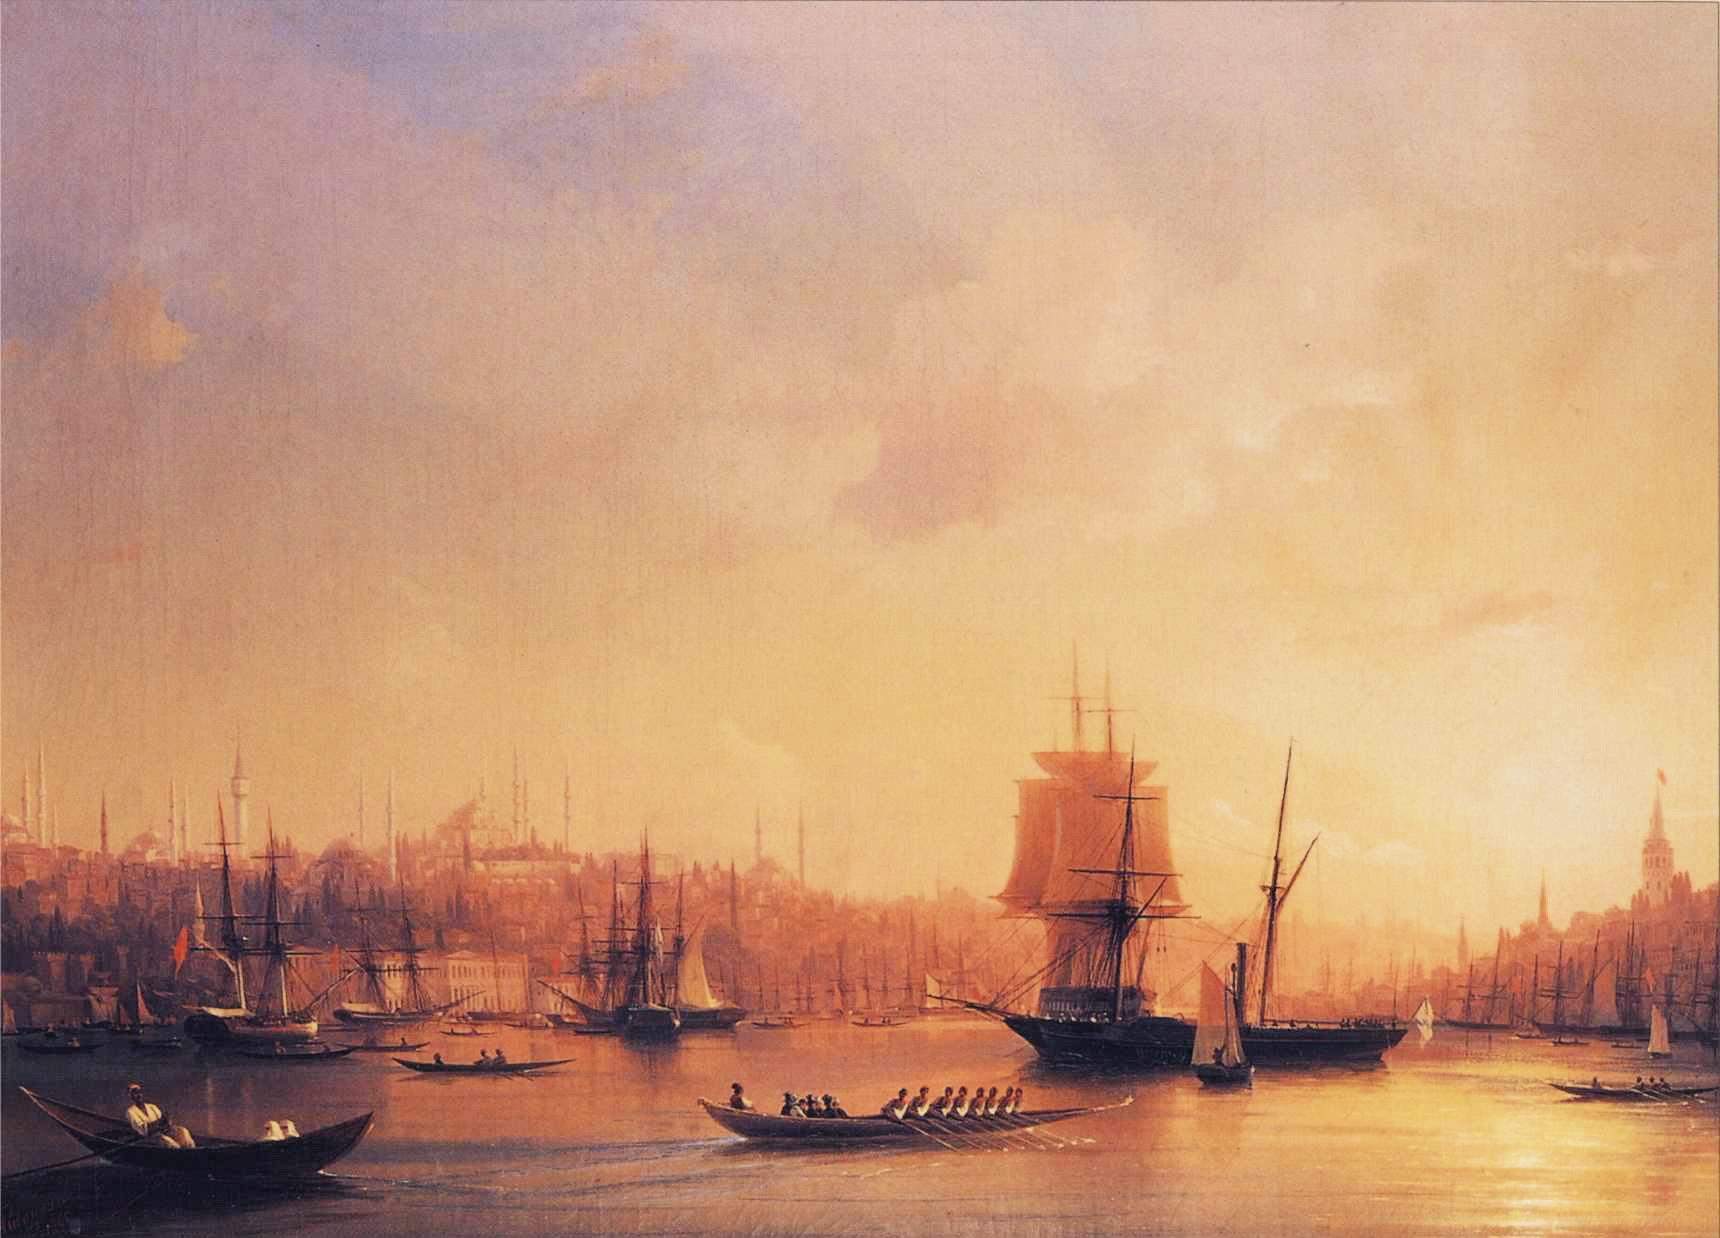 Dusk on the Golden Horn, 1845